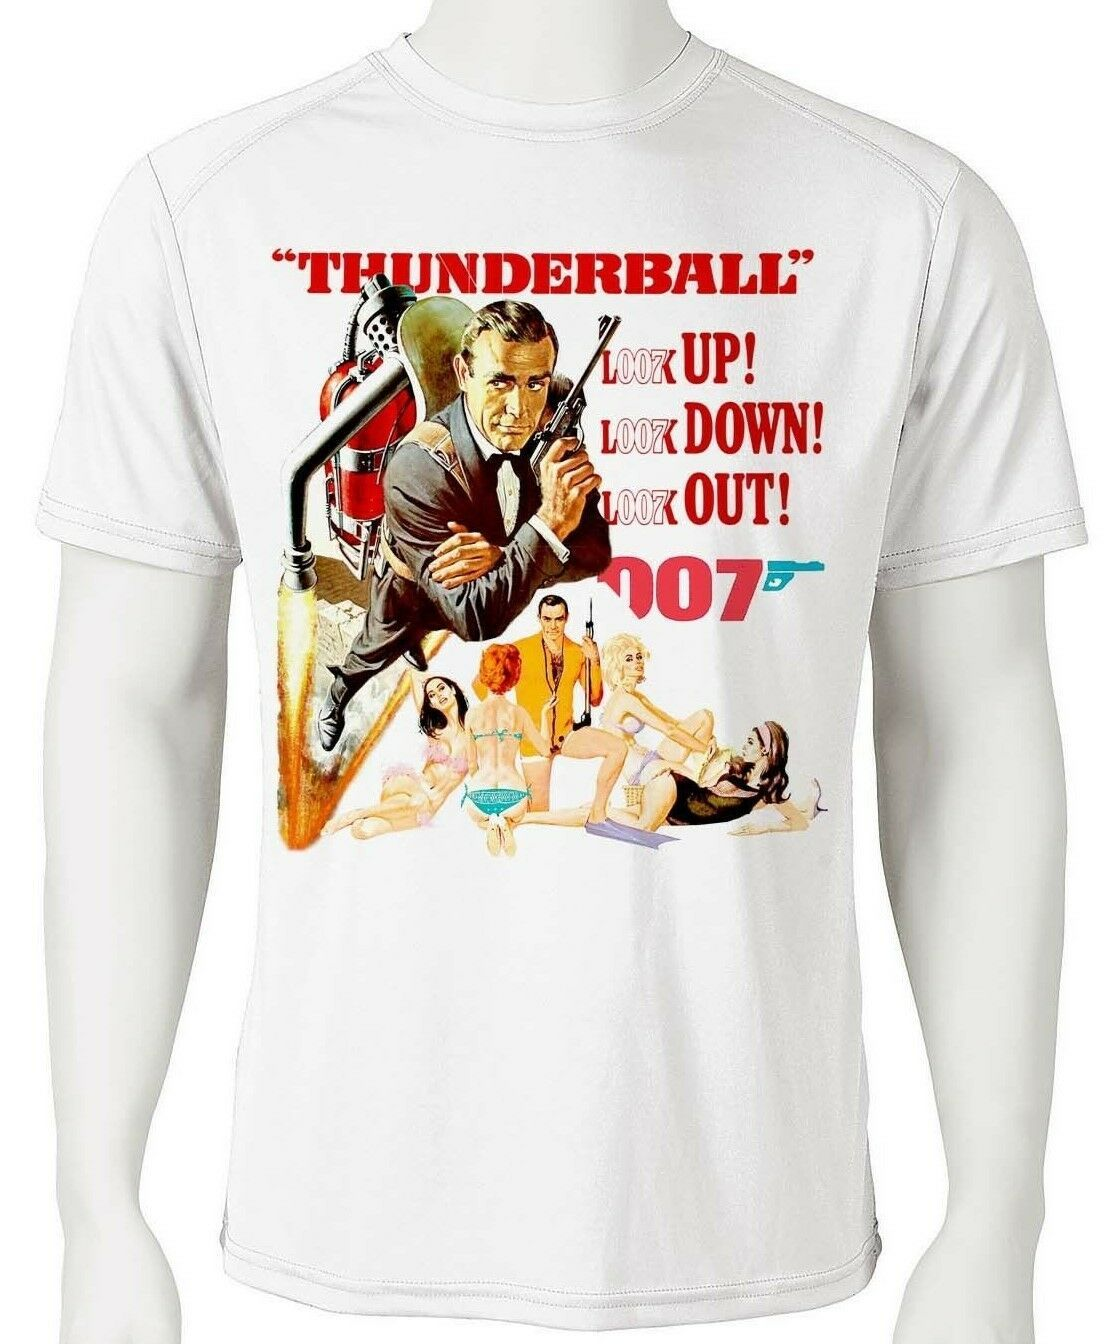 James Bond Dri Fit T-shirt Thunderball 007 graphic microfiber UPF +50 Sun Shirt